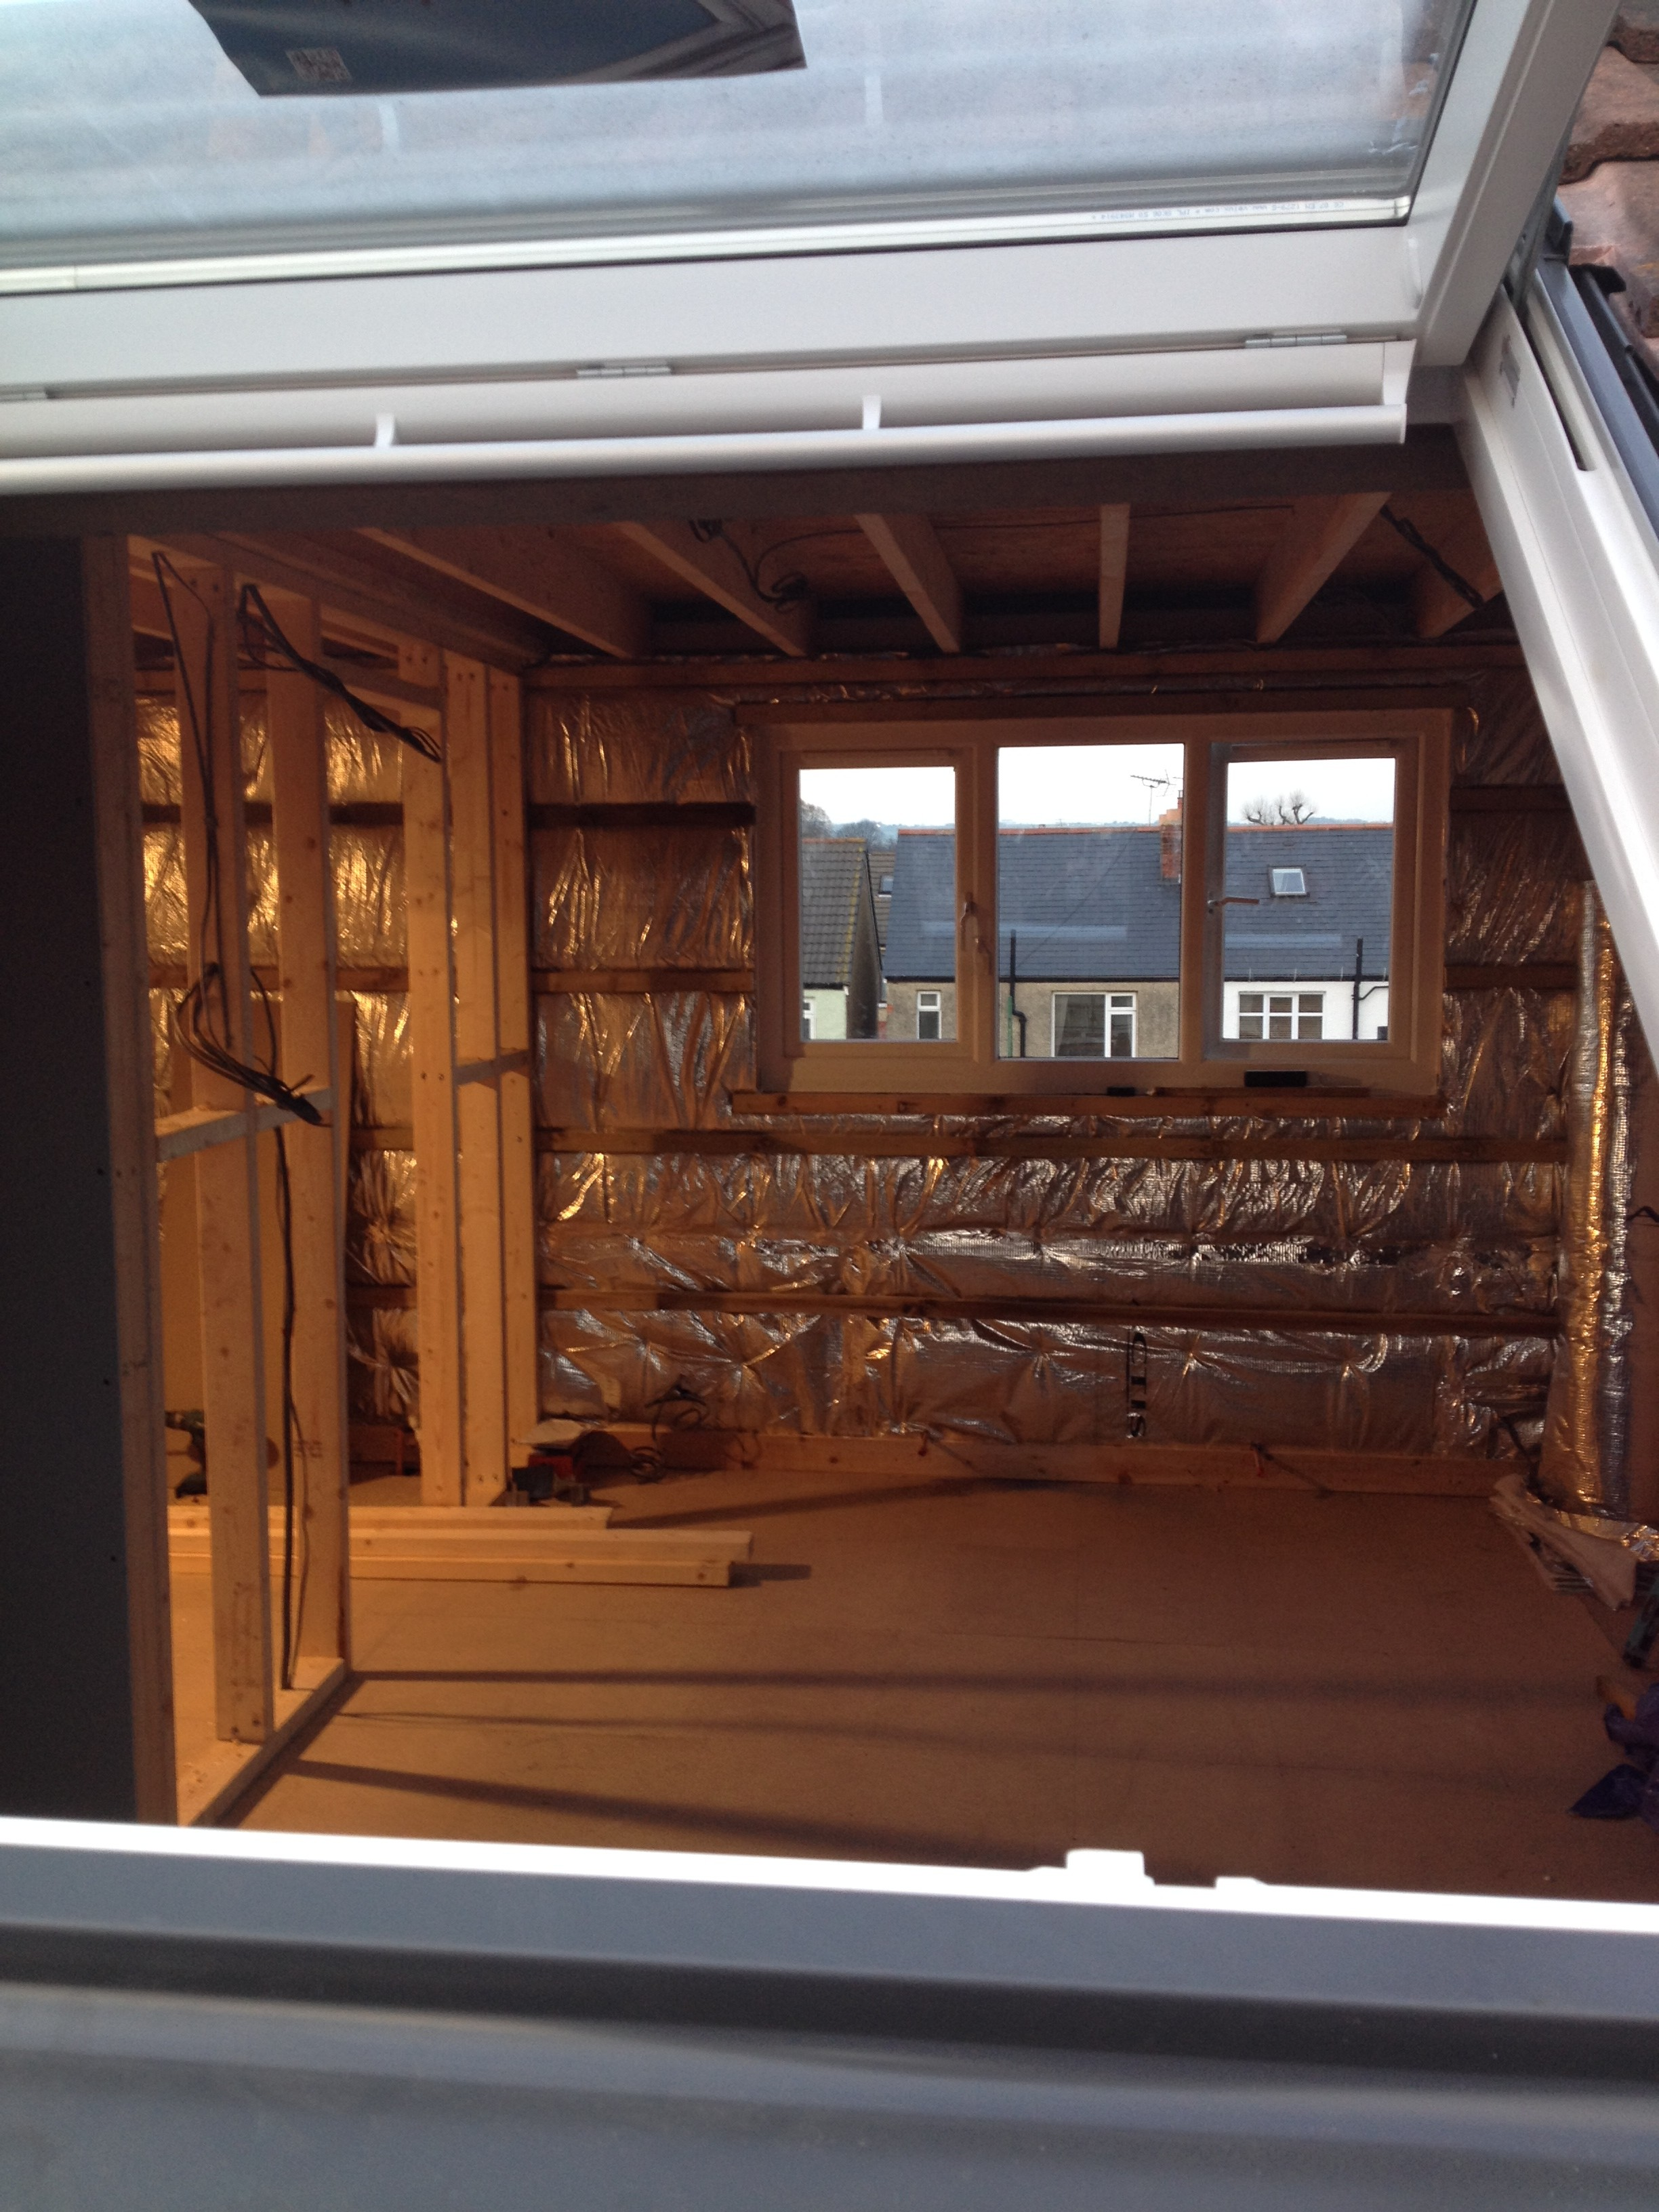 Loft conversion - insulation